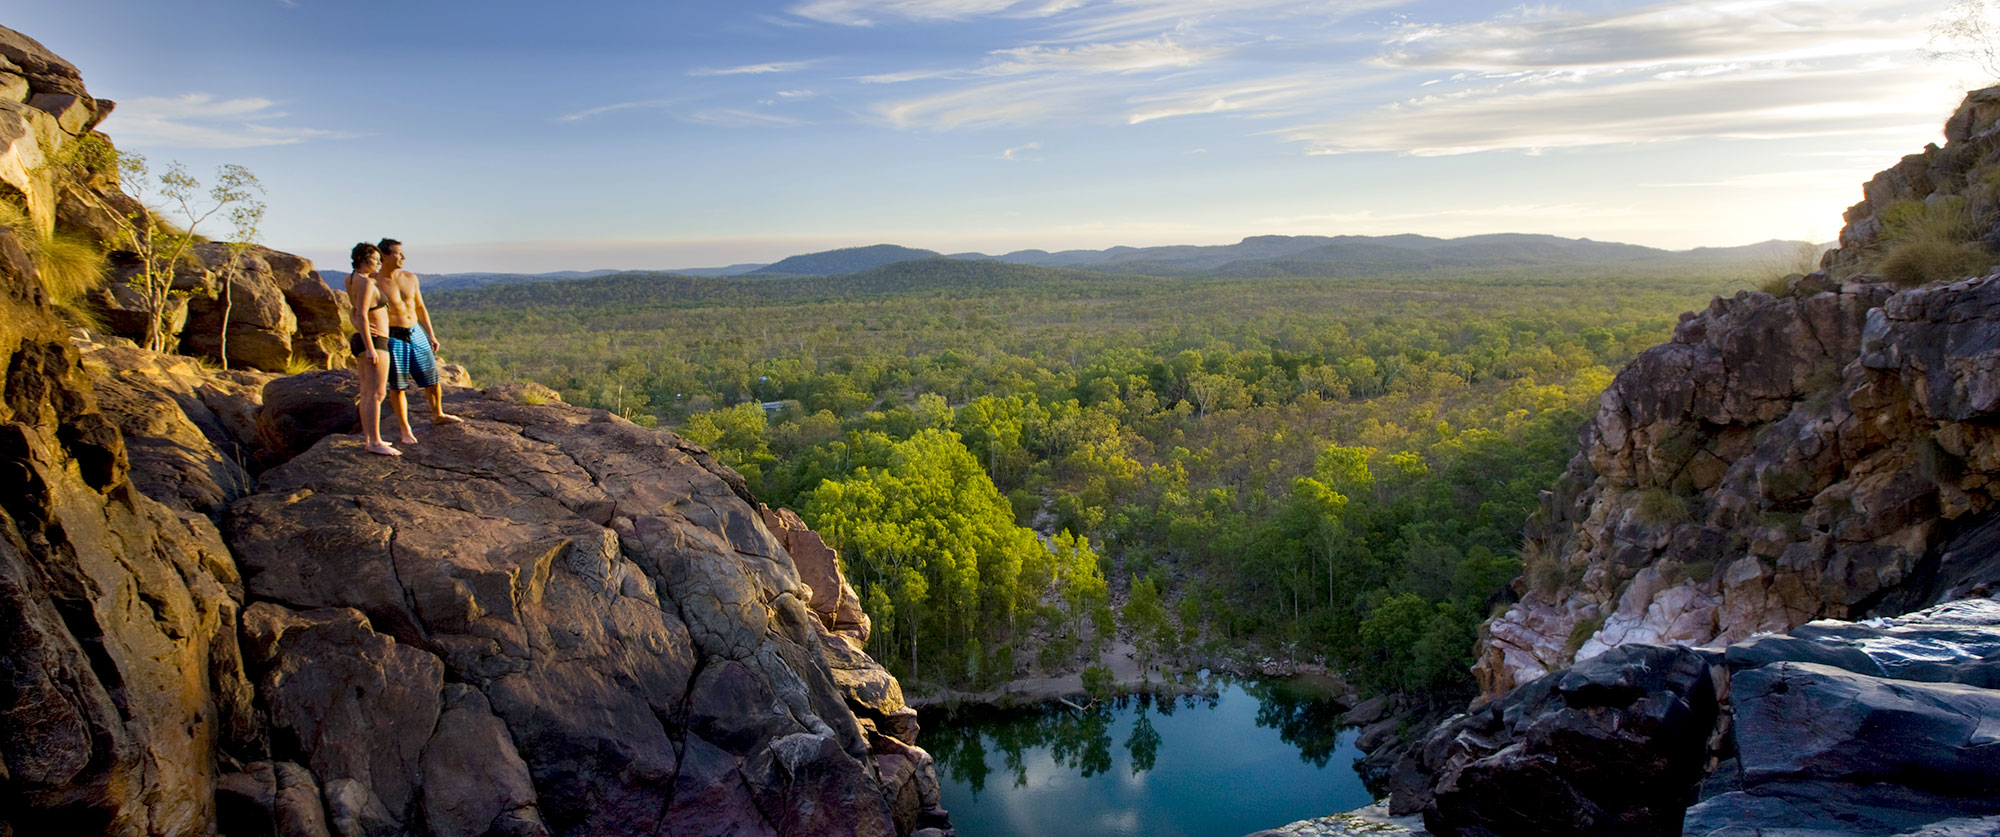 Australia Less Traveled - Kakadu National Park